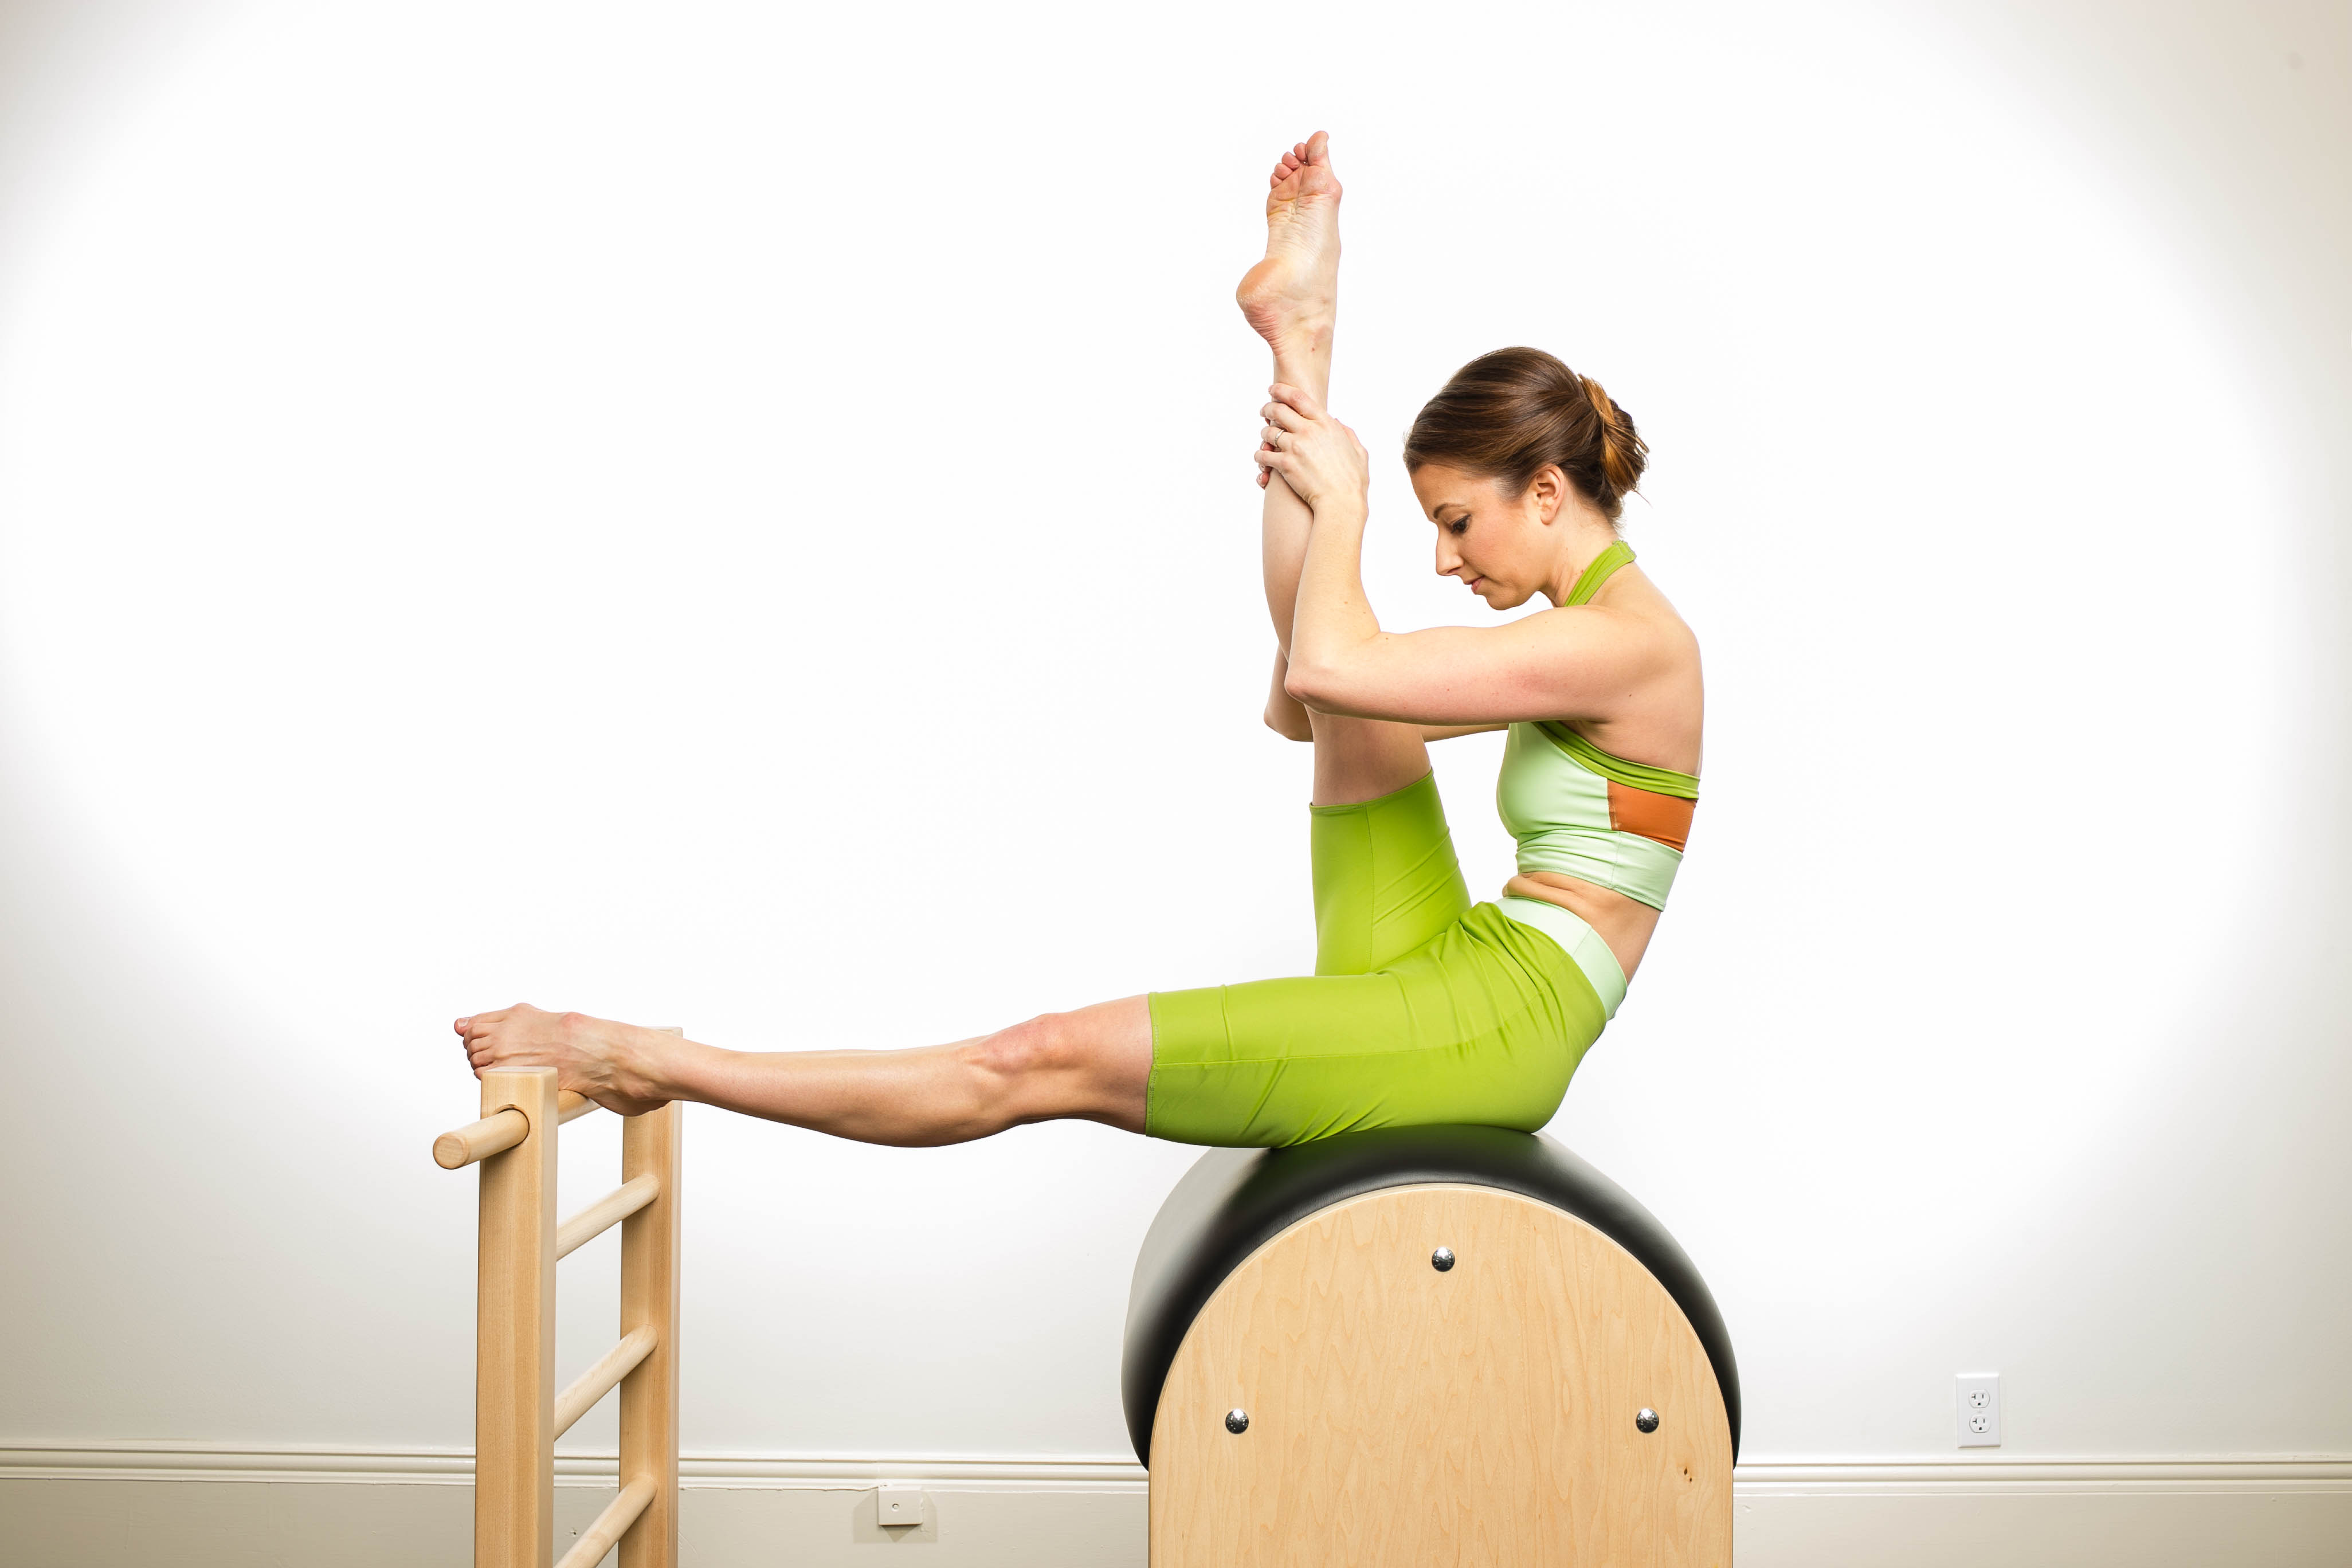 Join Us For The Opening of Thrive Pilates With Some Free Classes!